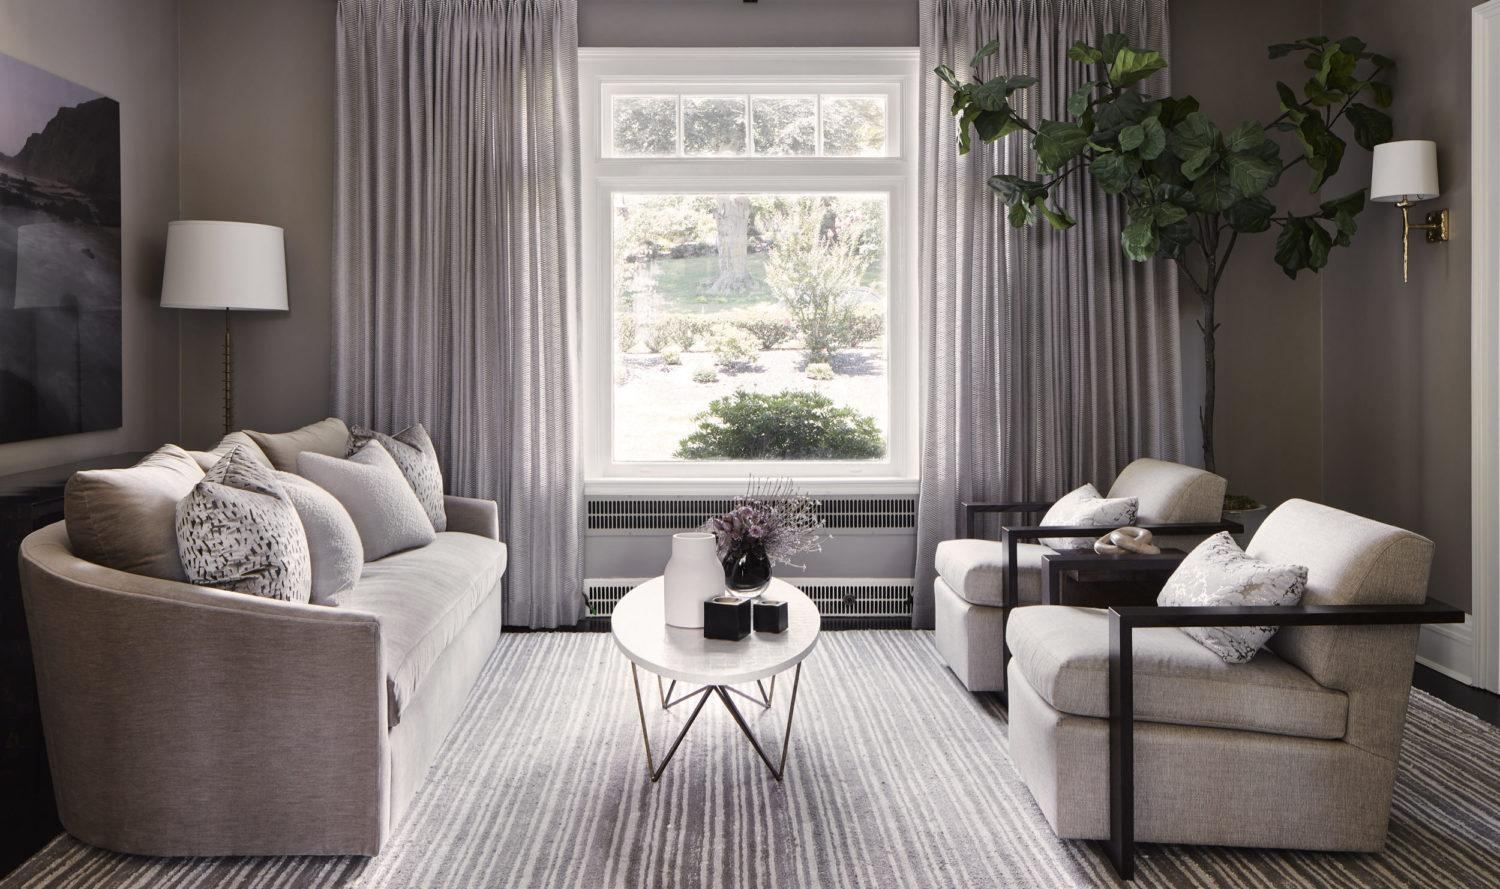 Full-service and Online Interior Design Based in NYC & Montclair, NJ